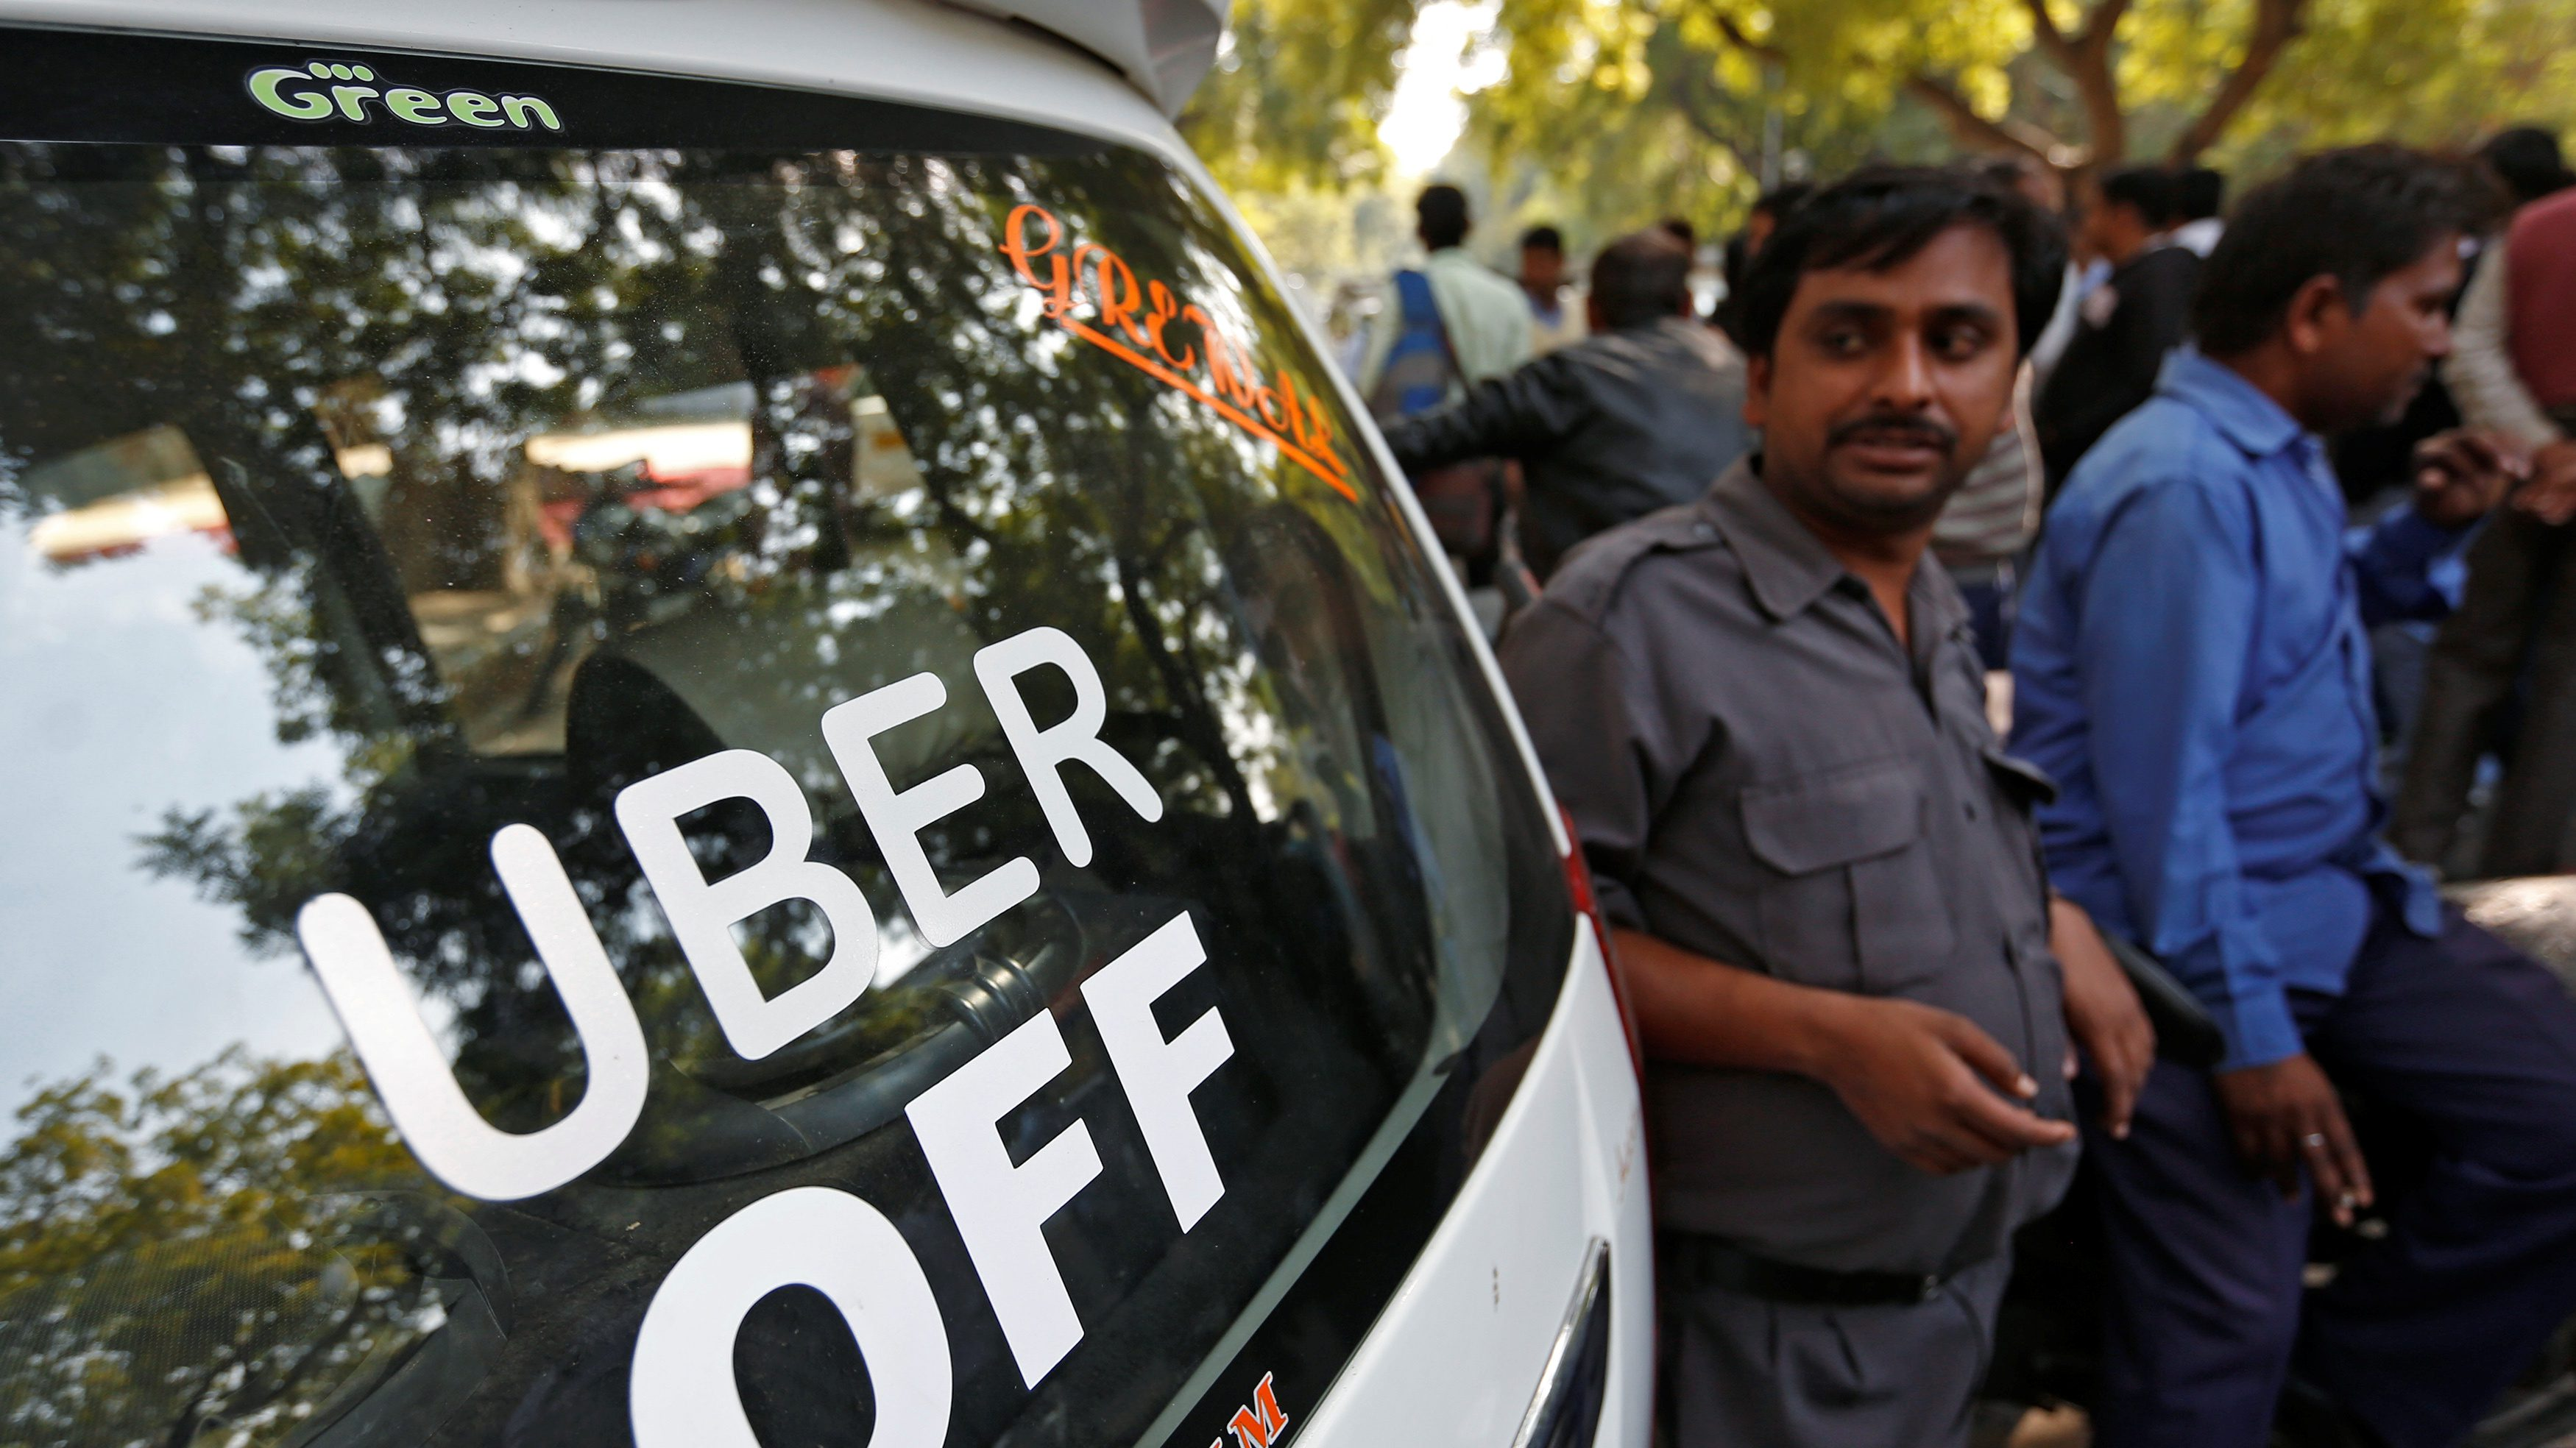 Uber and Ola drivers stand next to their parked vehicle's during a protest in New Delhi, India, February 14, 2017. REUTERS/Adnan Abidi - RTSYKRM